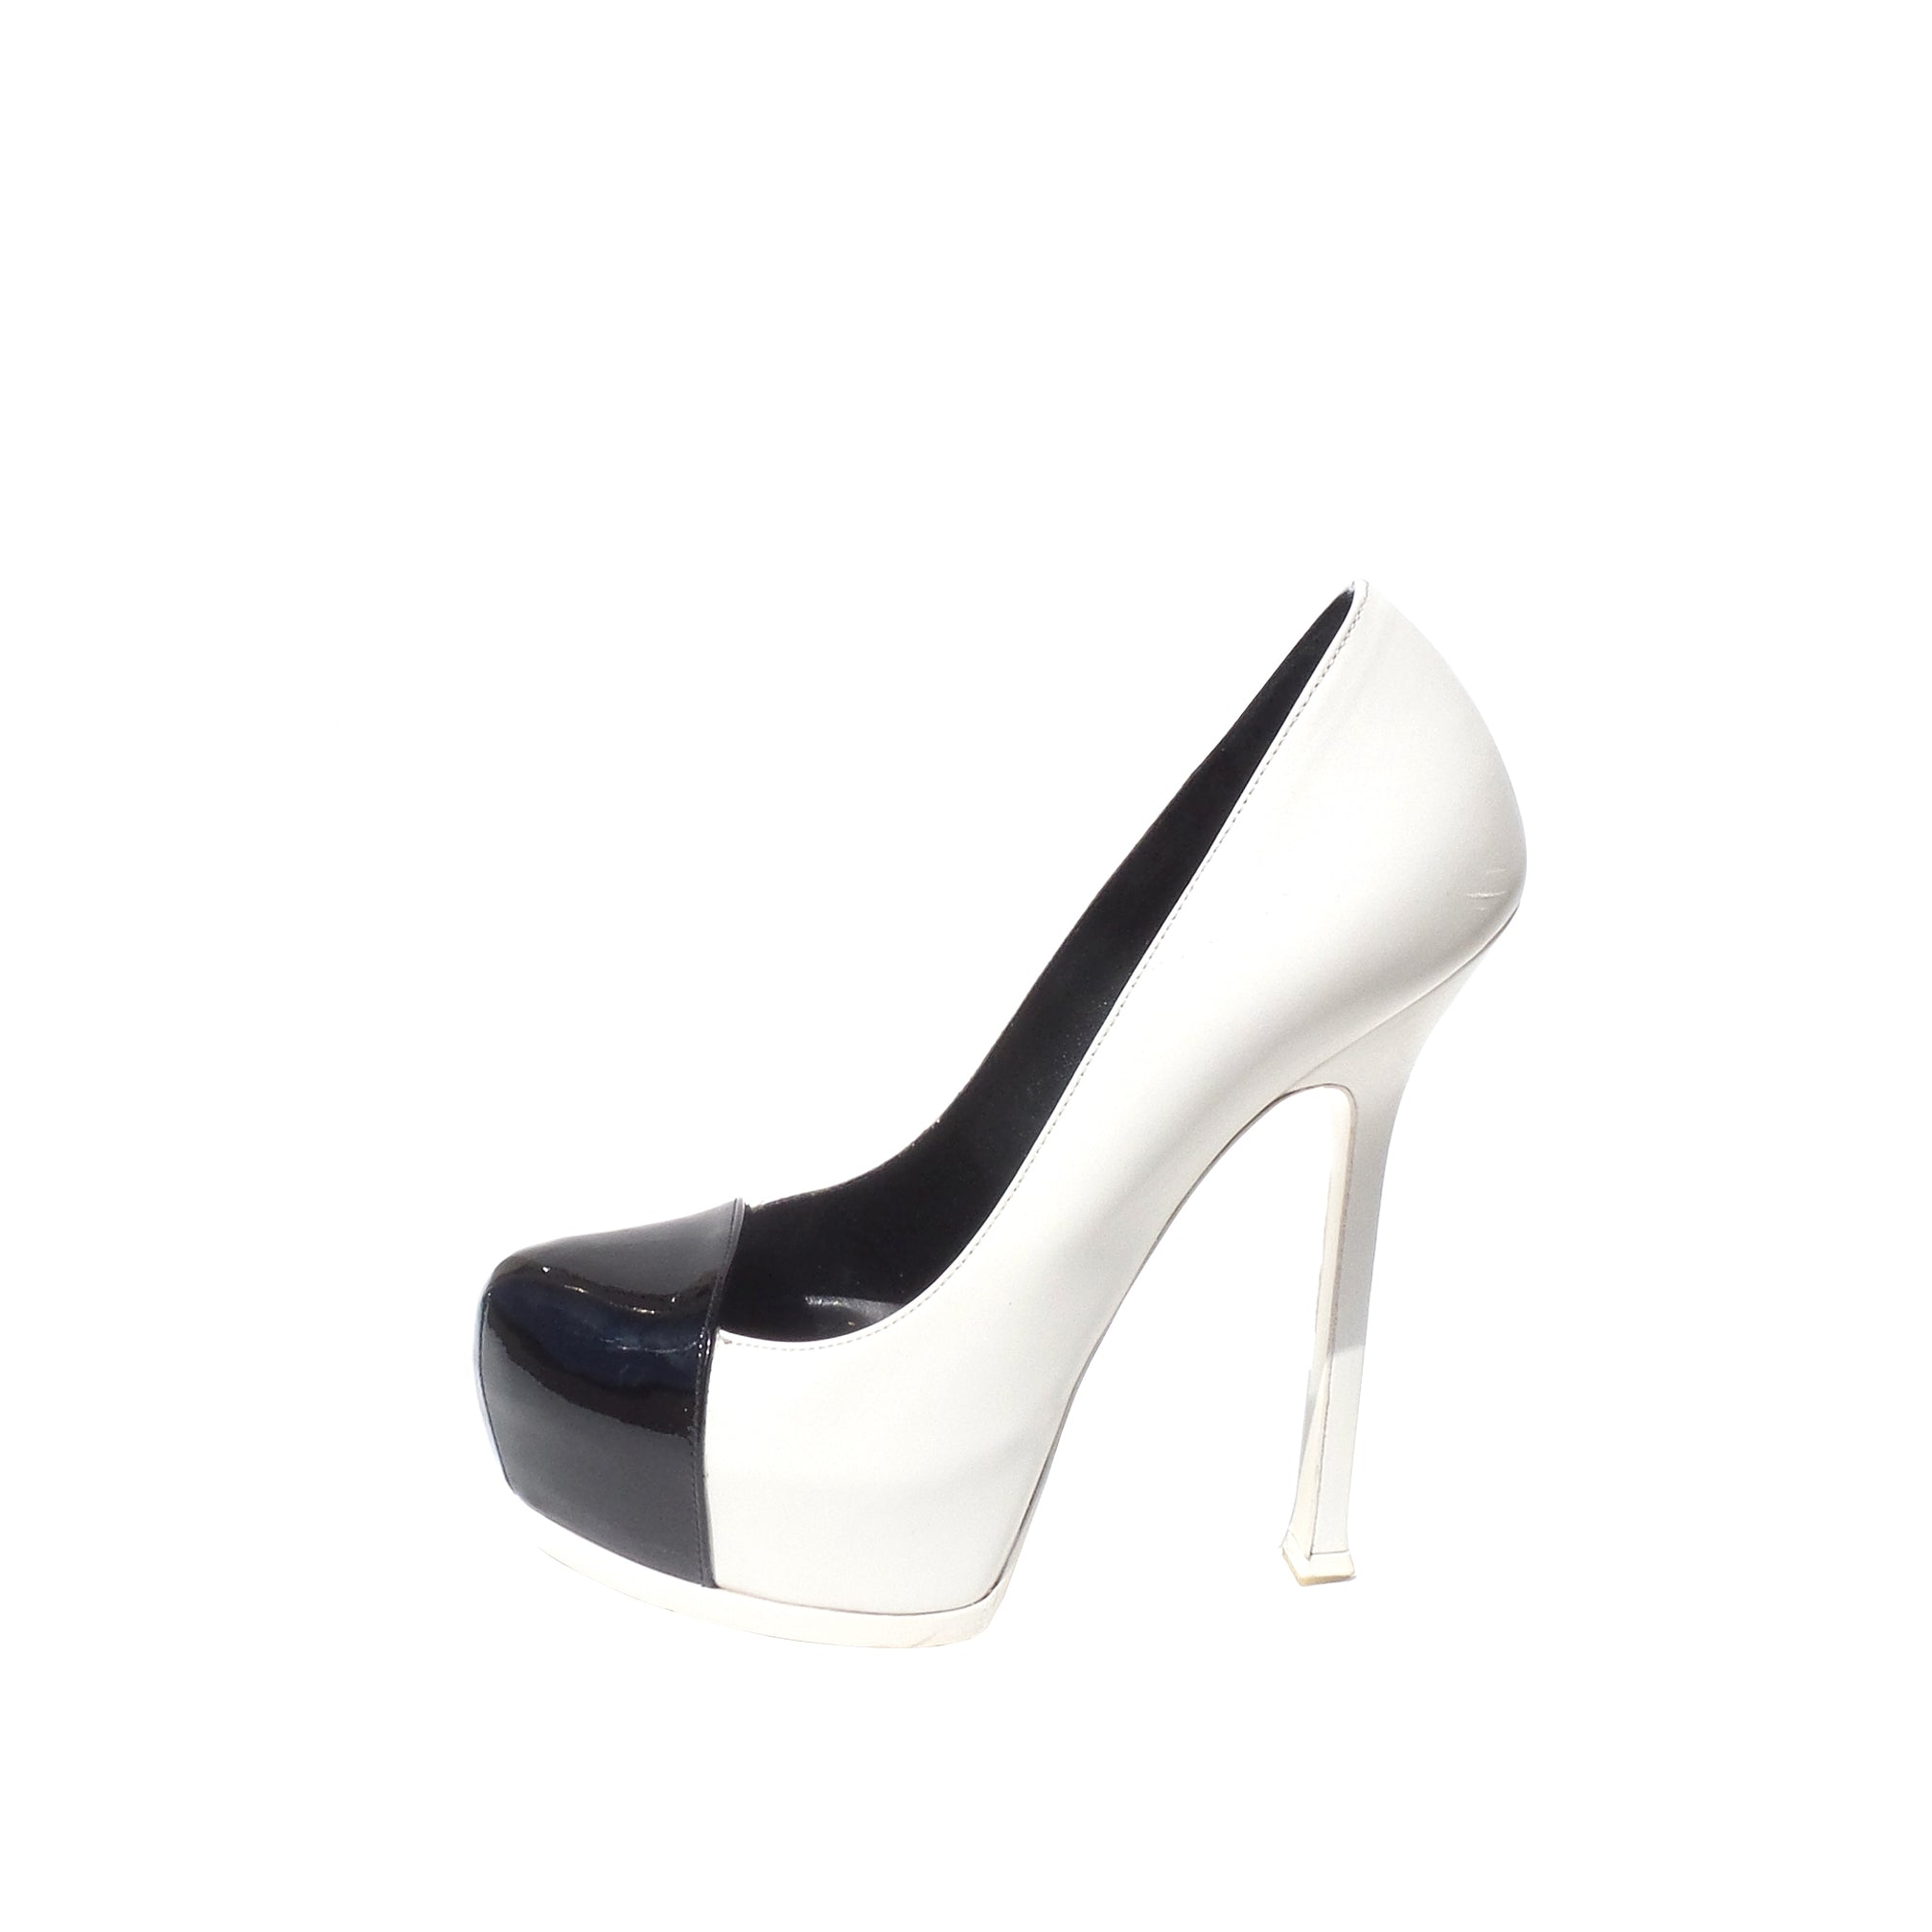 072b22852a1 YVES SAINT LAURENT White Leather Black Patent Cap Toe Tribute Two Heels  Pumps 37